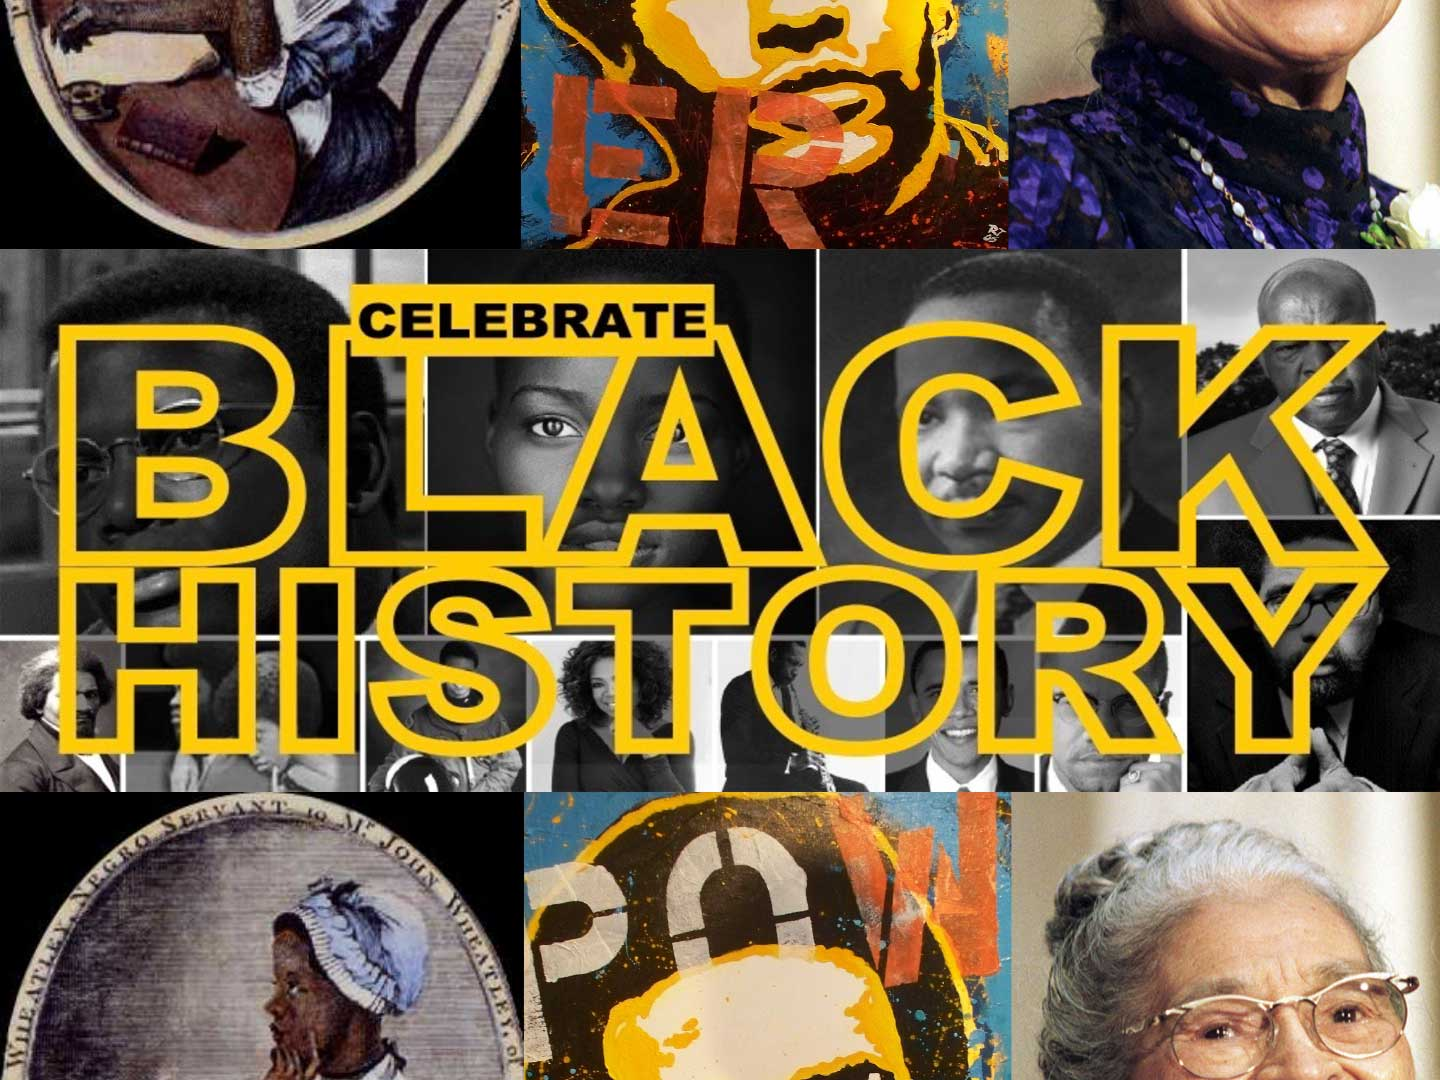 See what's going on at WSU for Black History Month